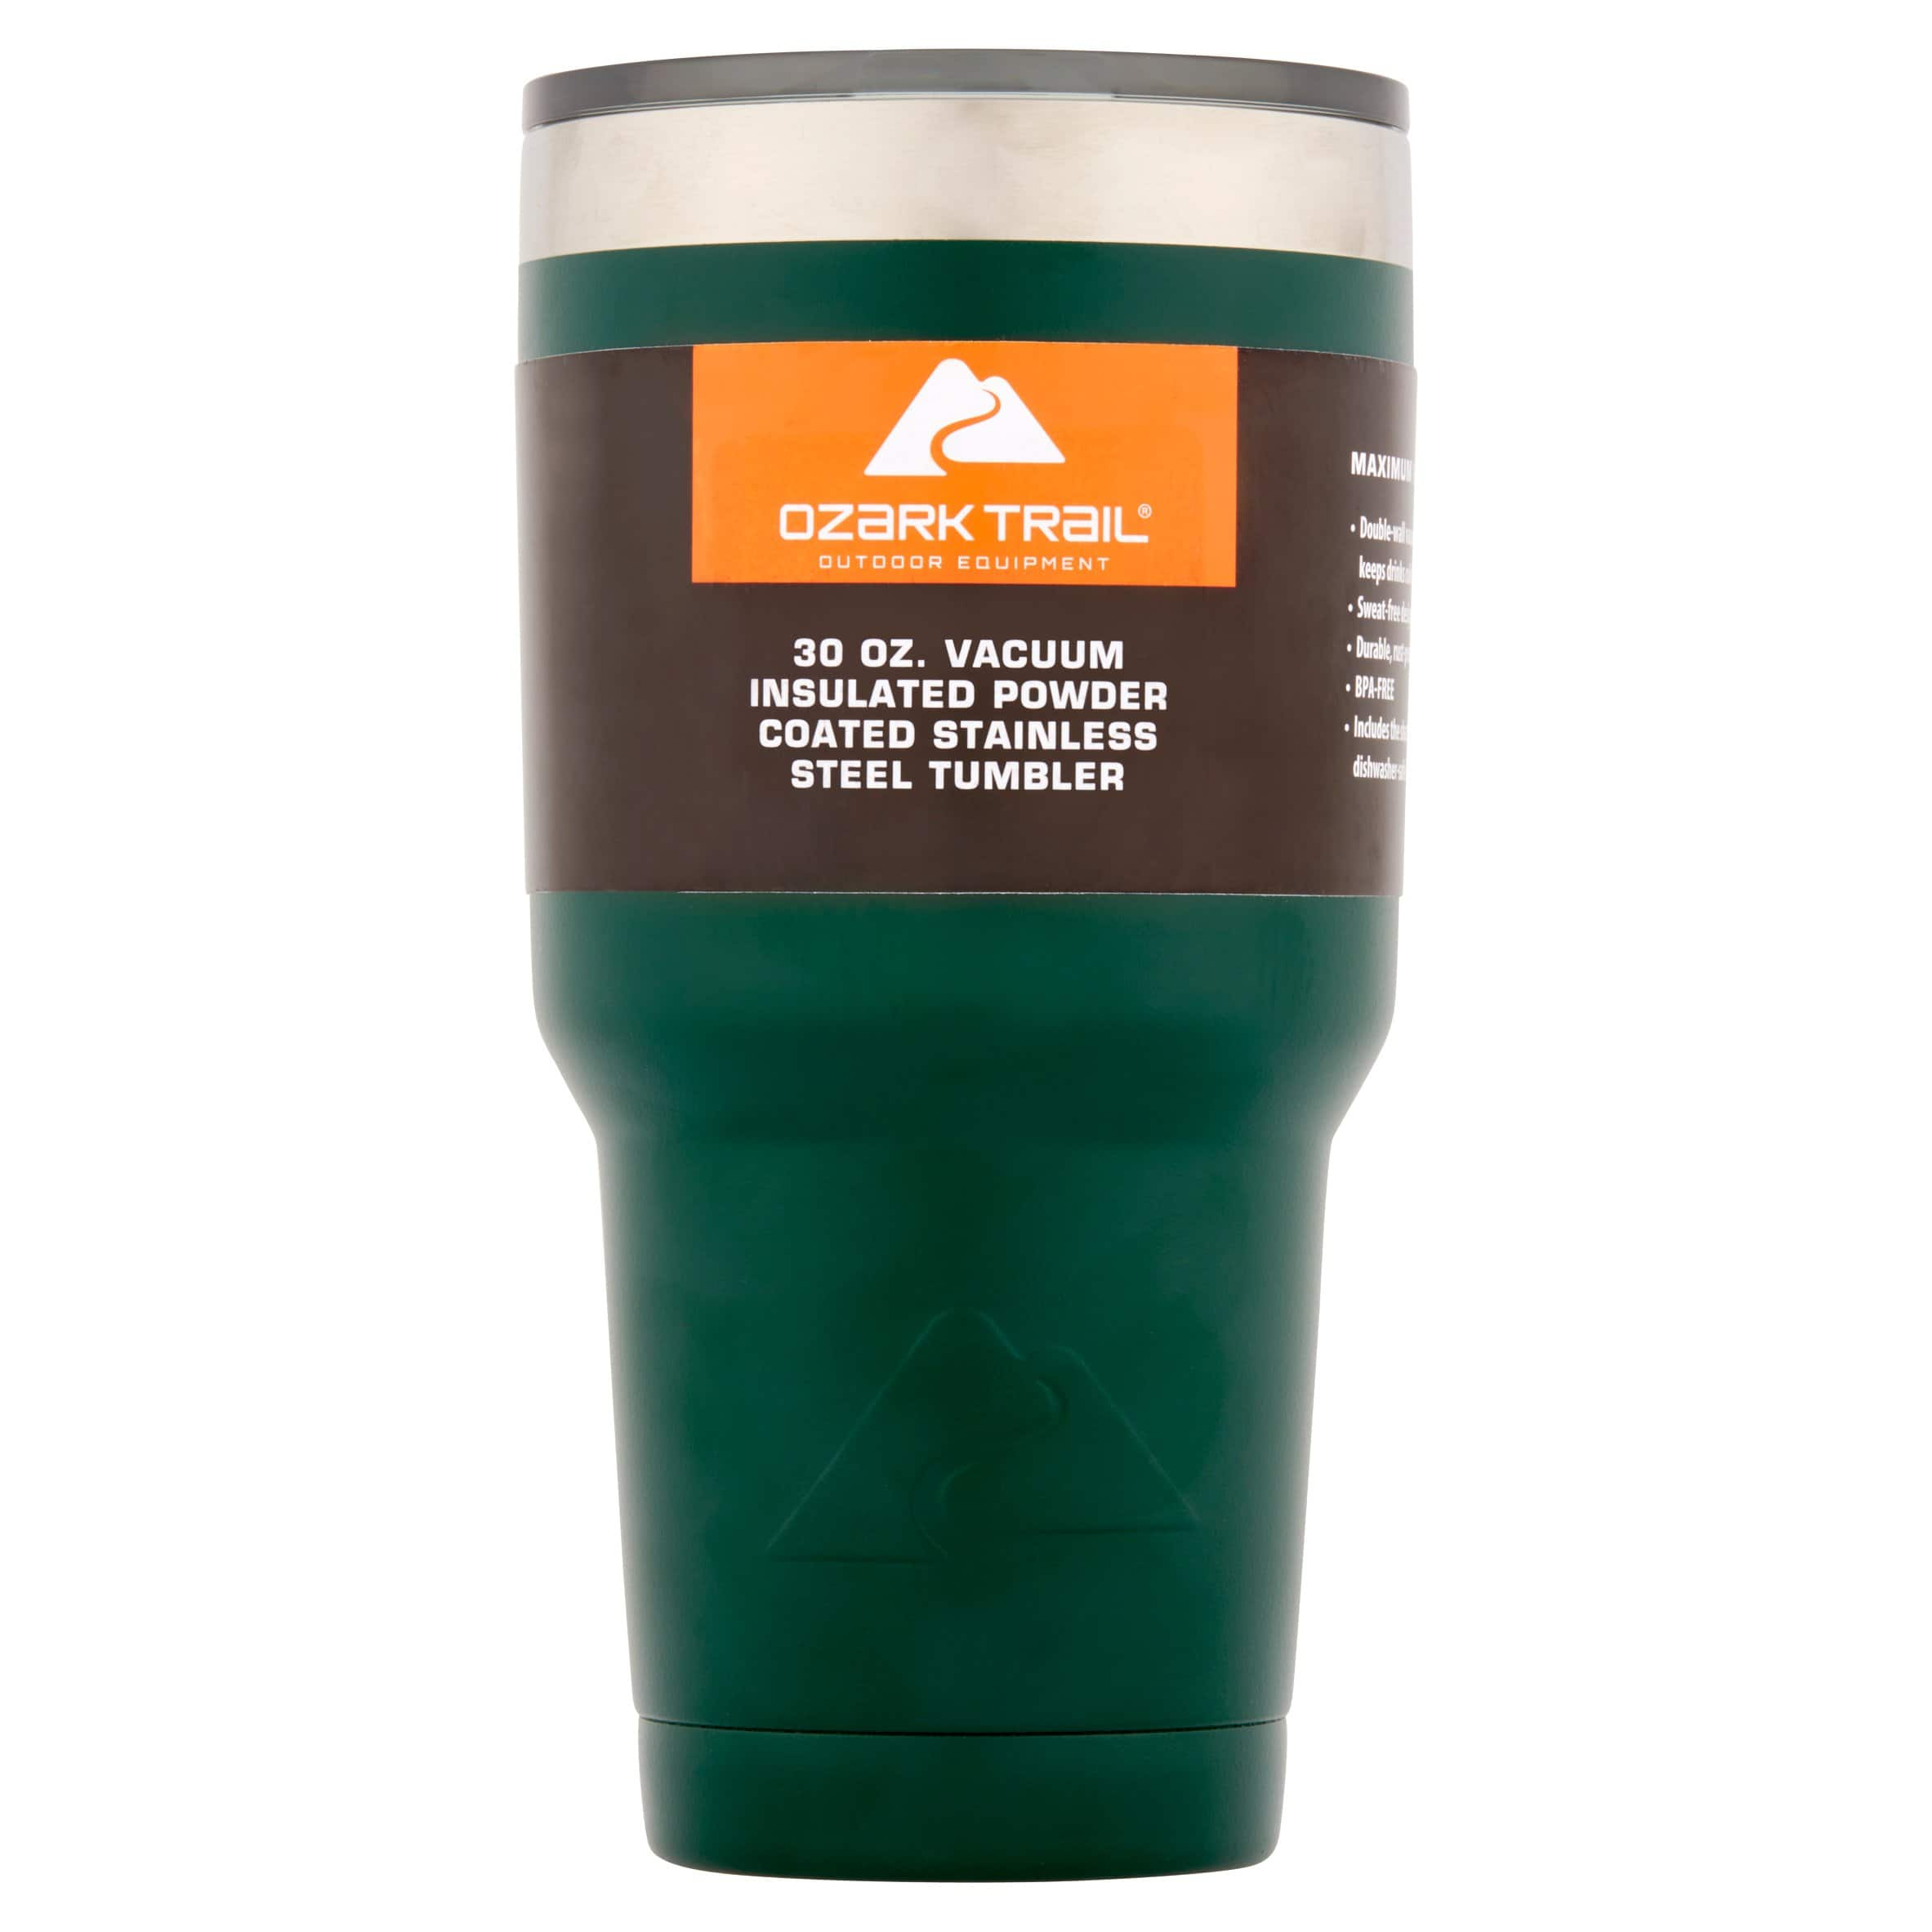 30 oz Ozark Trail Double Wall Vacuum Sealed Tumbler $5.00 Free Store Pickup. GREEN COLOR ONLY